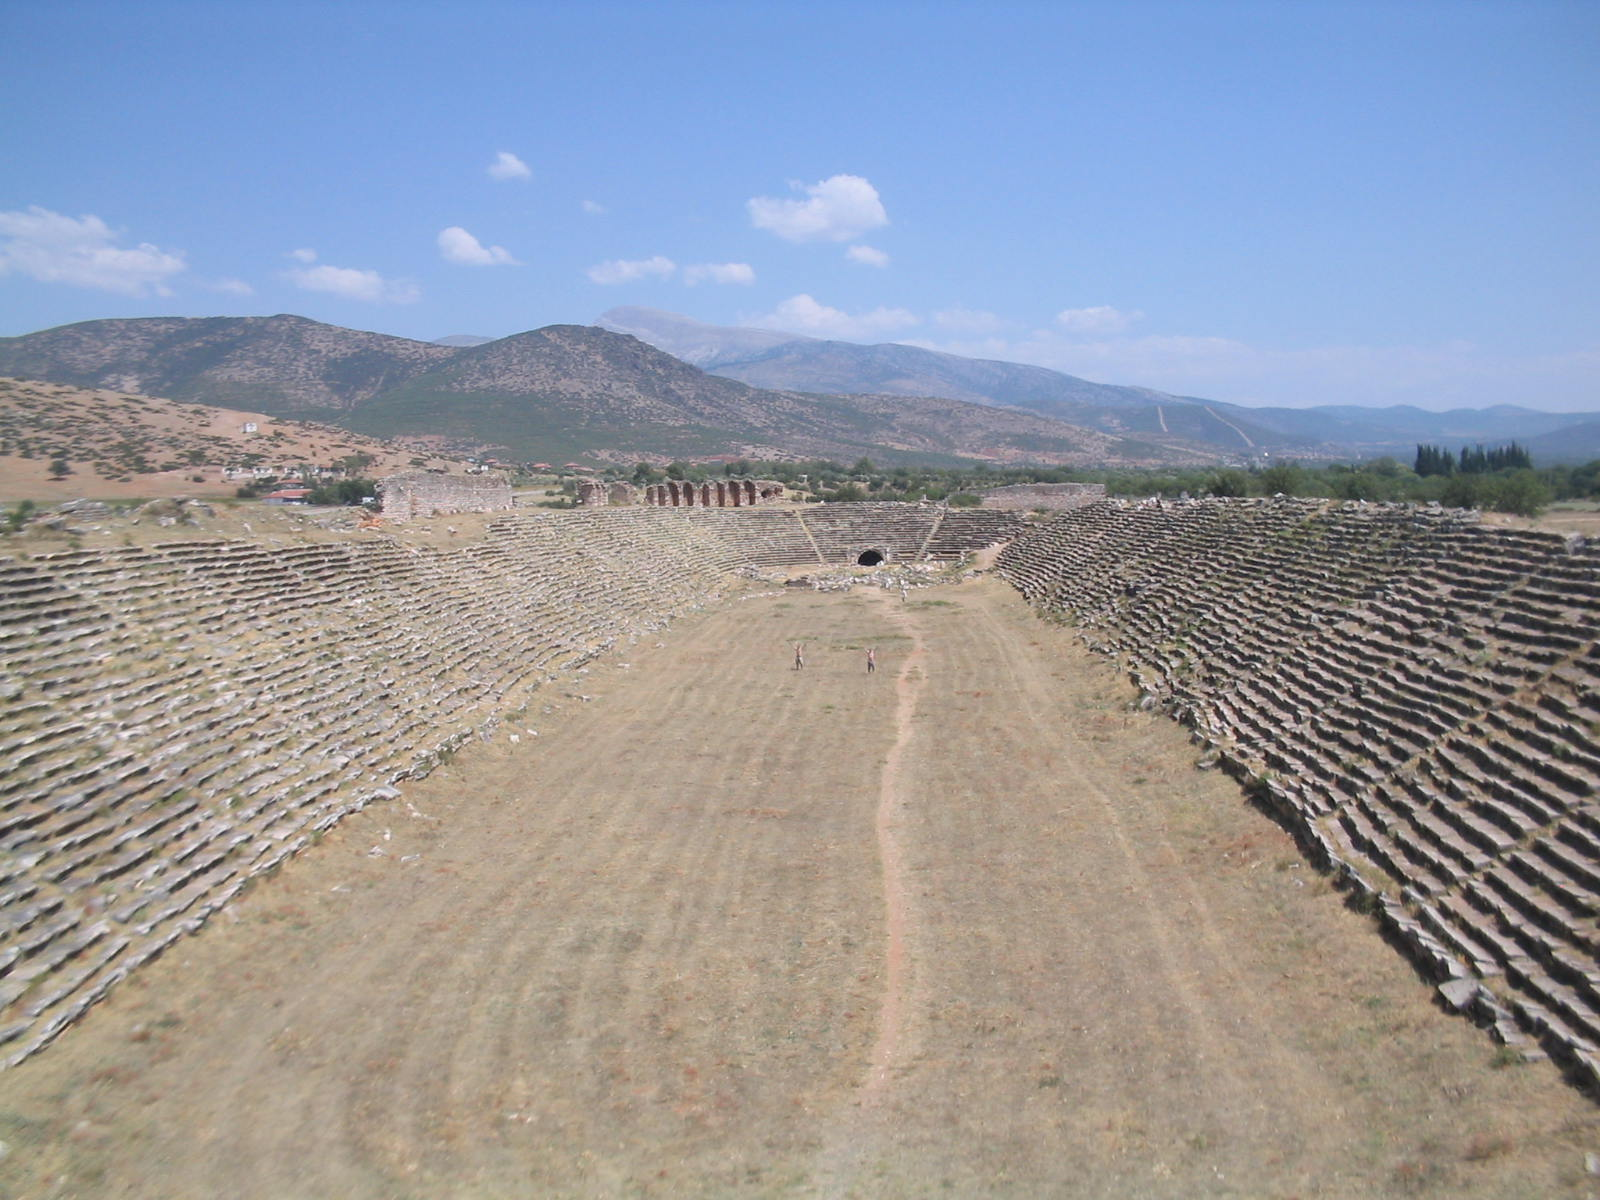 File:Aphrodisias stadium.jpg - Wikimedia Commons